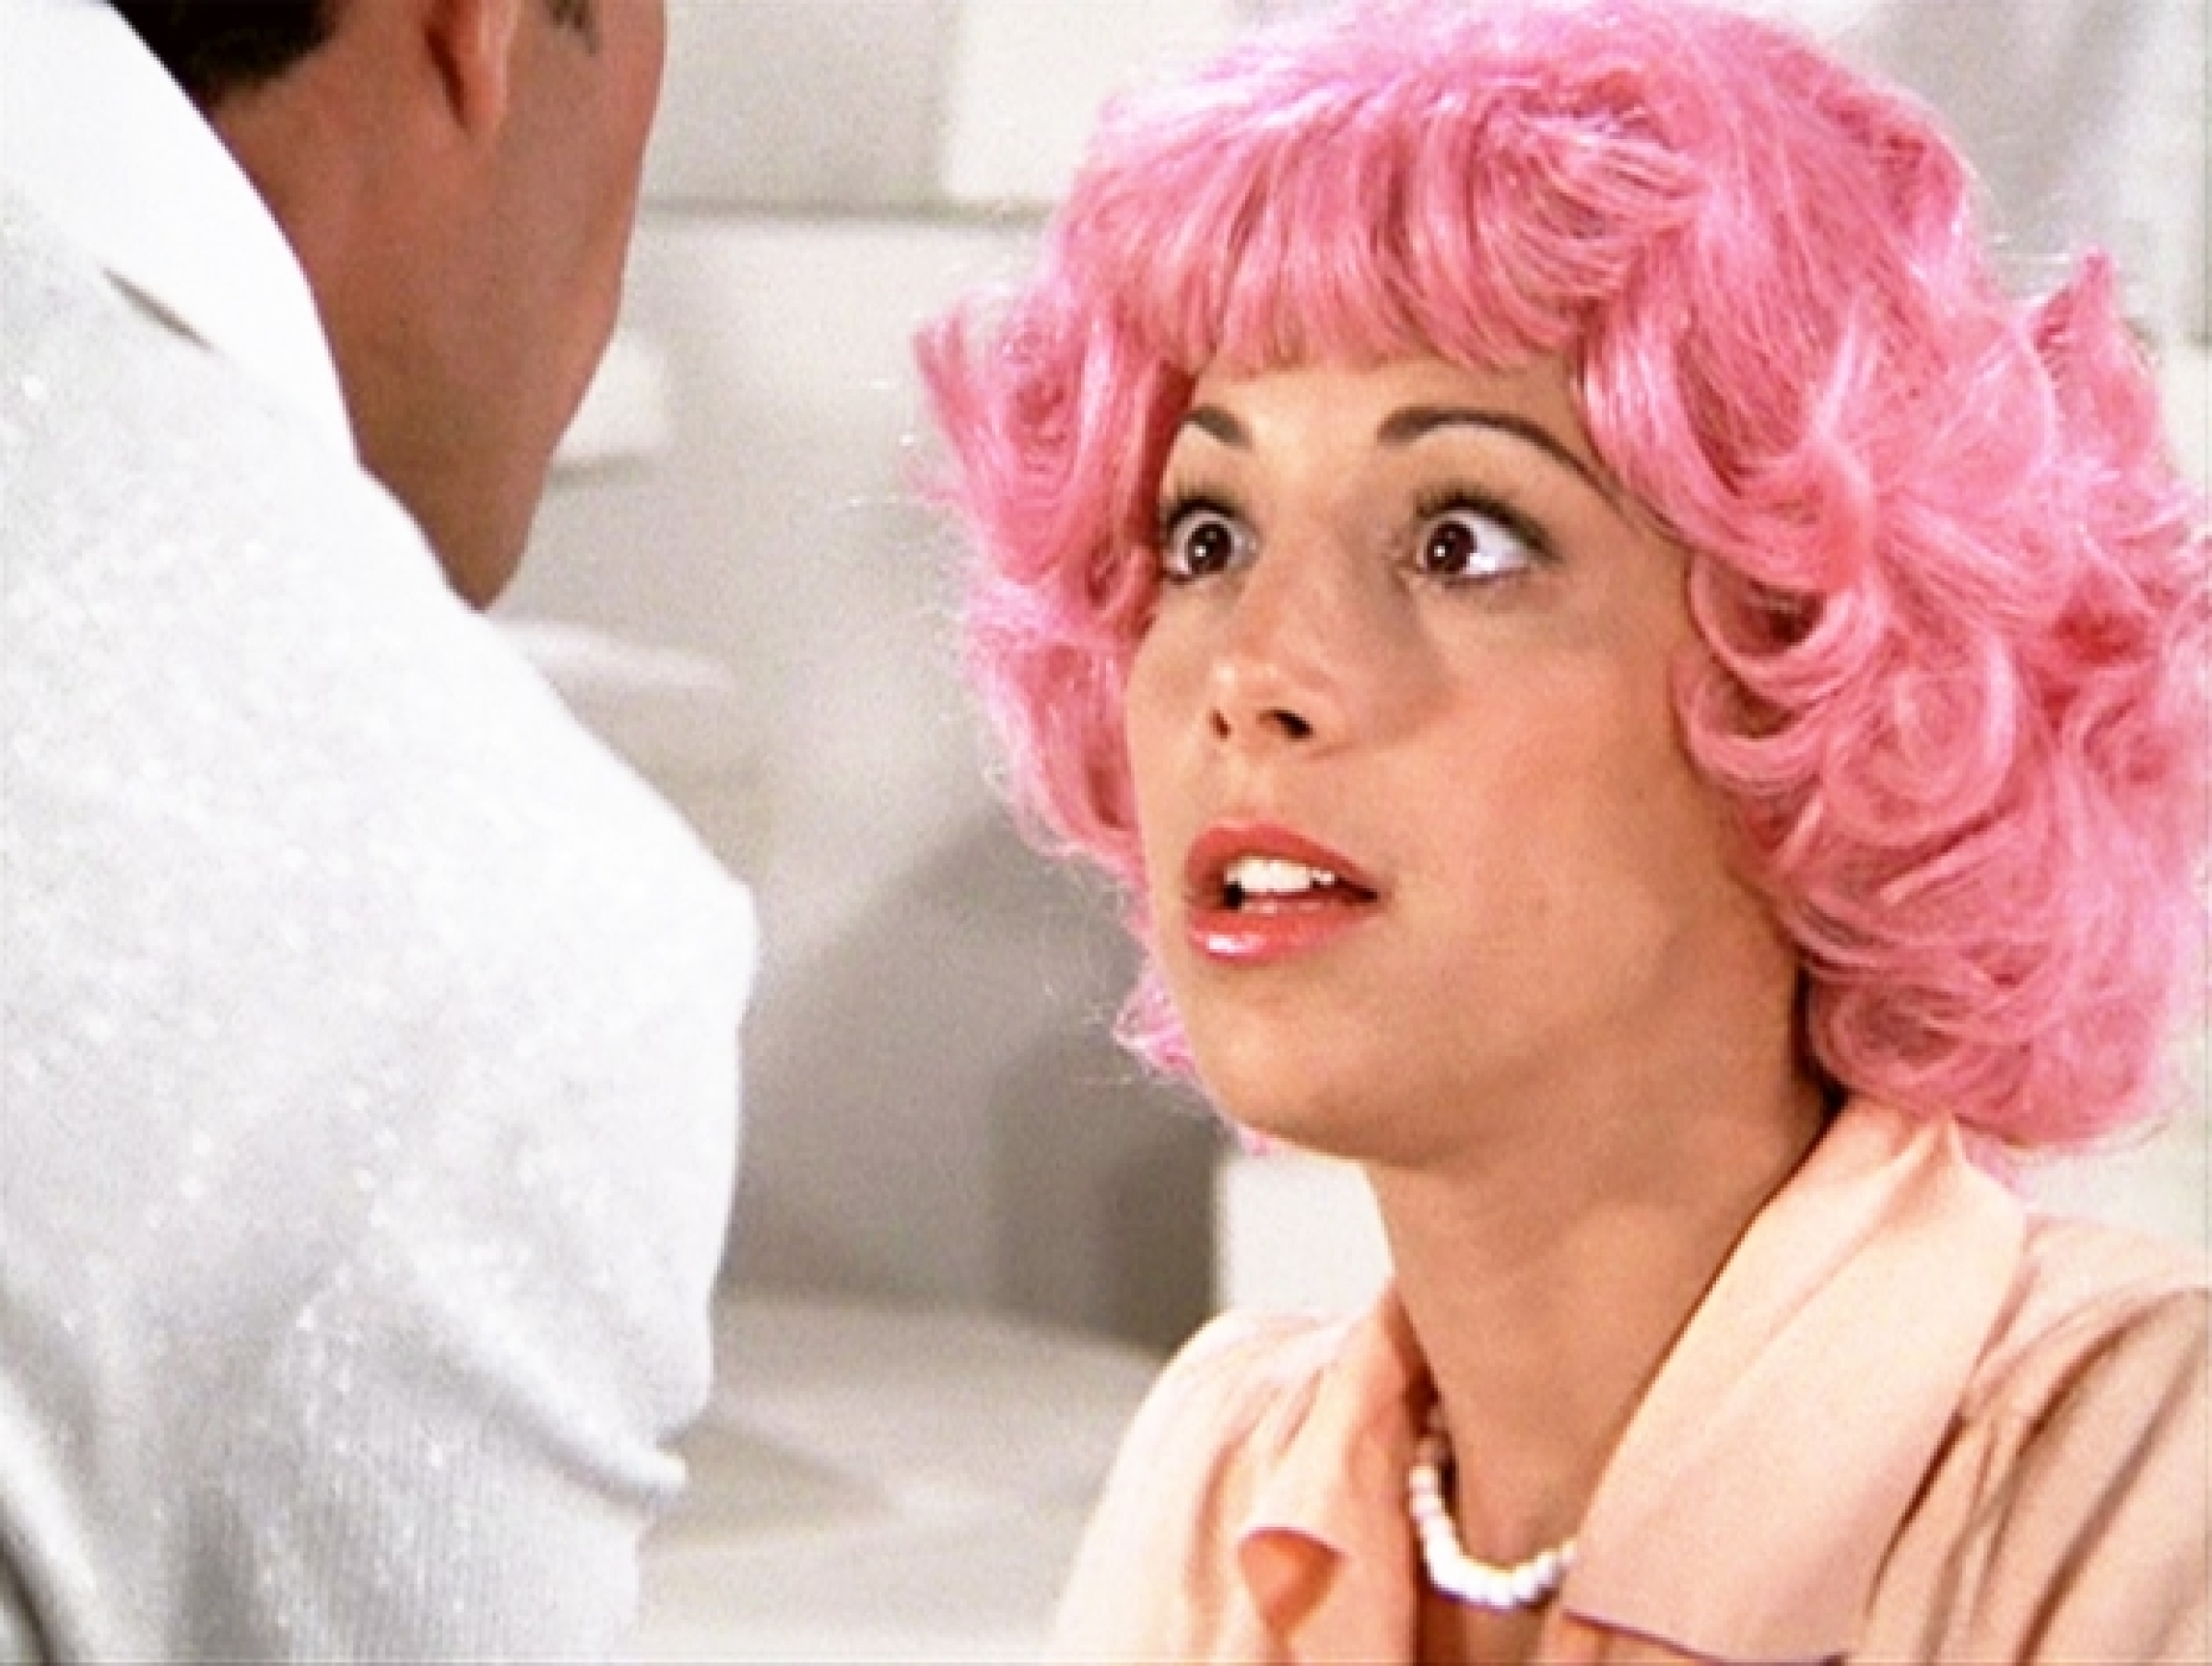 The image is from Grease. Frenchy stares at Teen Angel, sporting a pink curly bob.